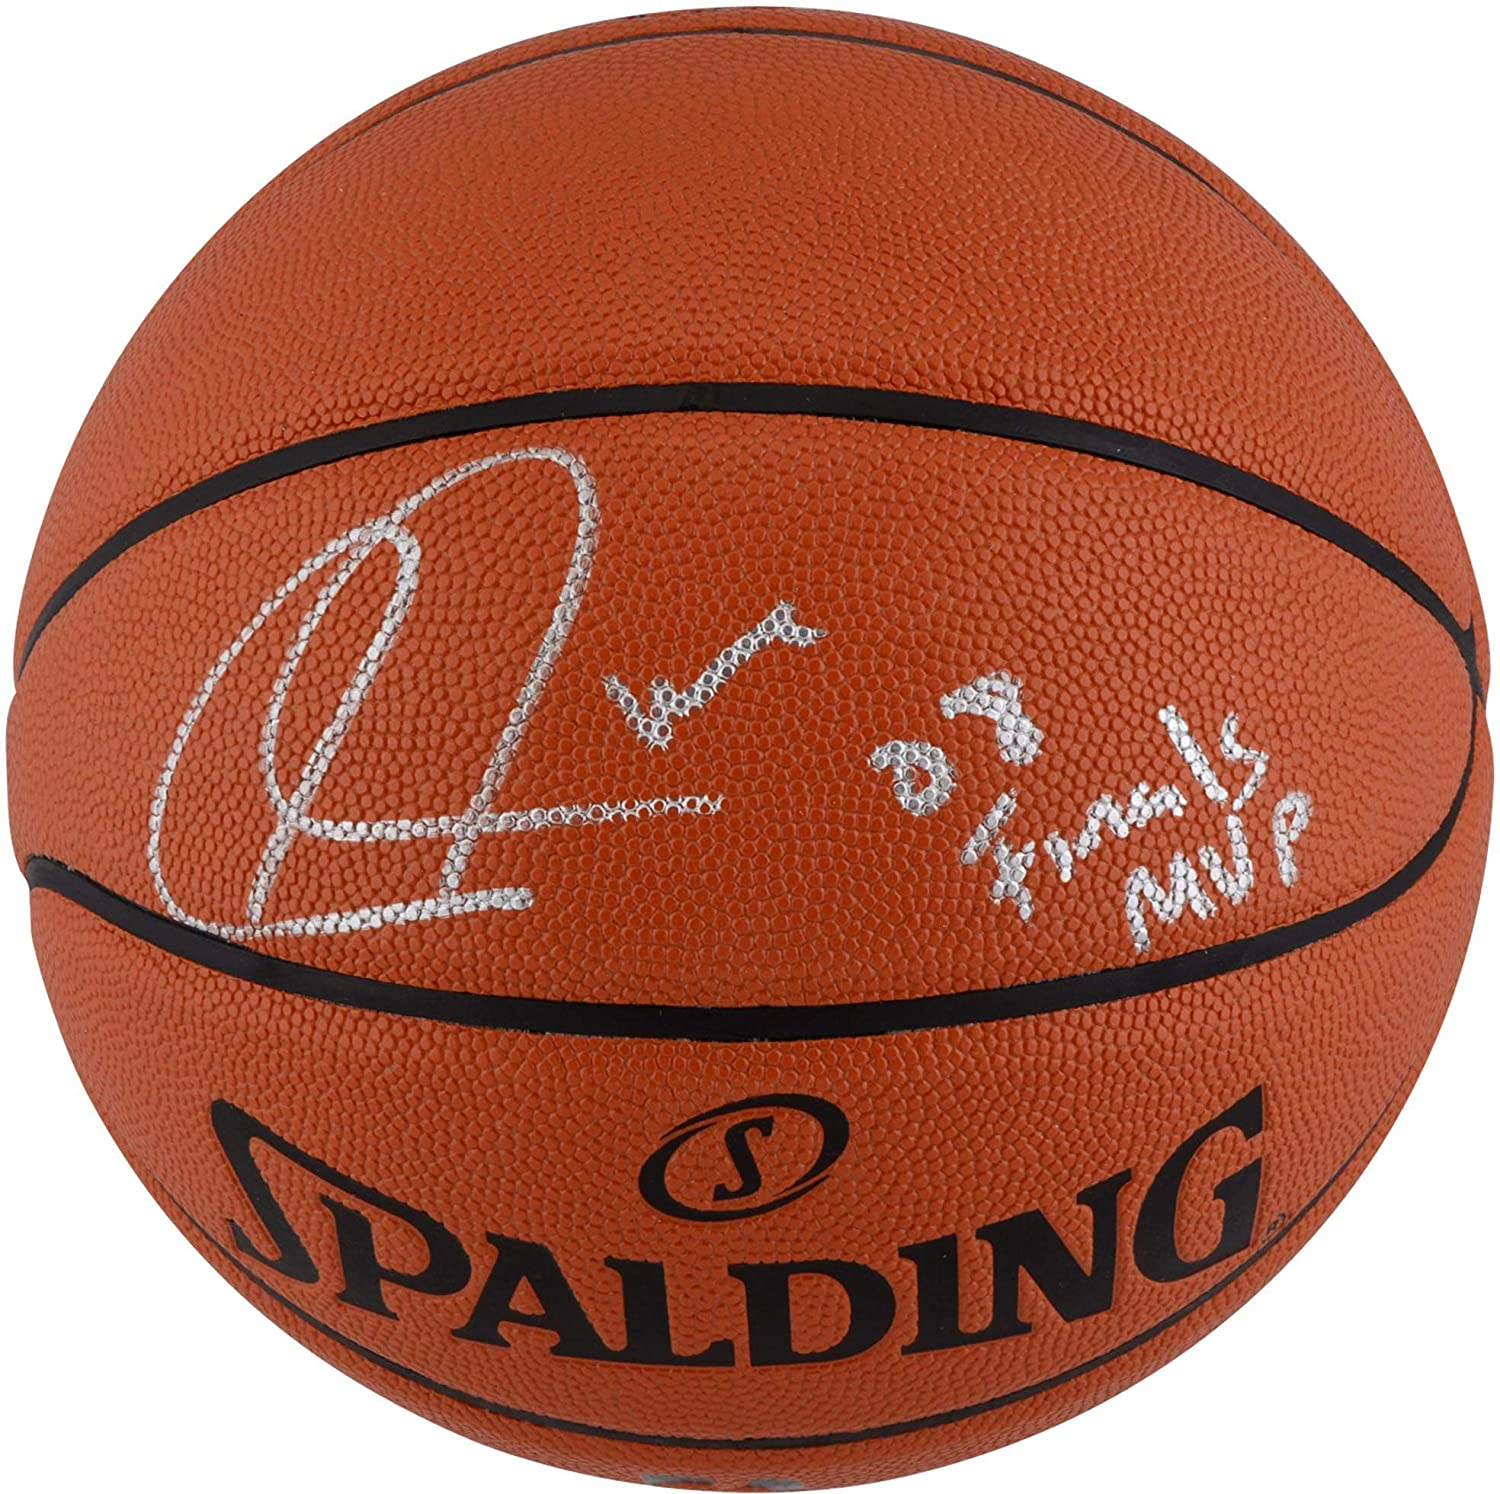 Paul Pierce Boston Celtics Autographed Indoor/Outdoor Basketball with'08 Finals MVP' Inscription - Fanatics Authentic Certified